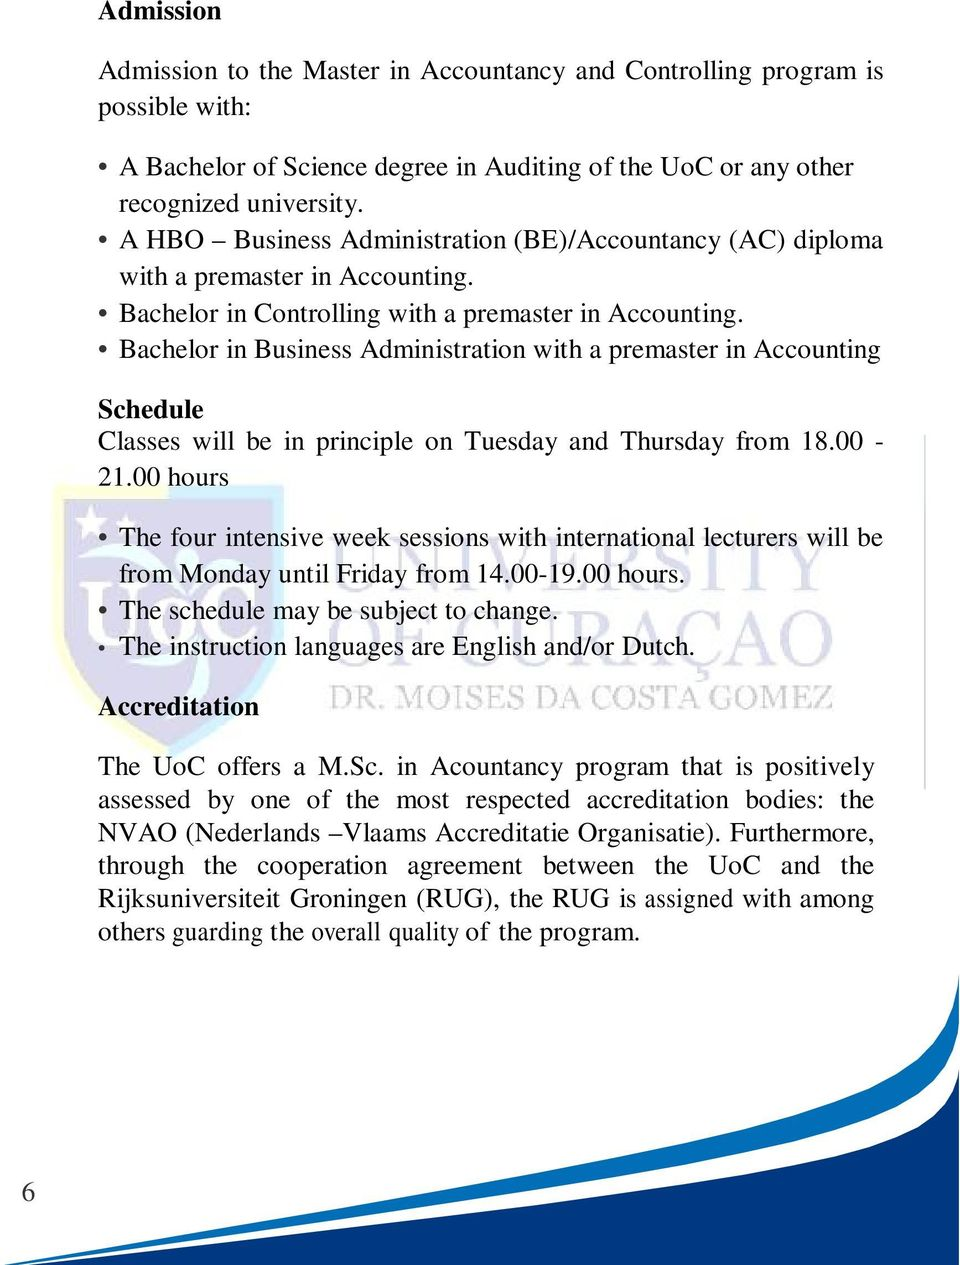 Bachelor in Business Administration with a premaster in Accounting Schedule Classes will be in principle on Tuesday and Thursday from 18.00-21.